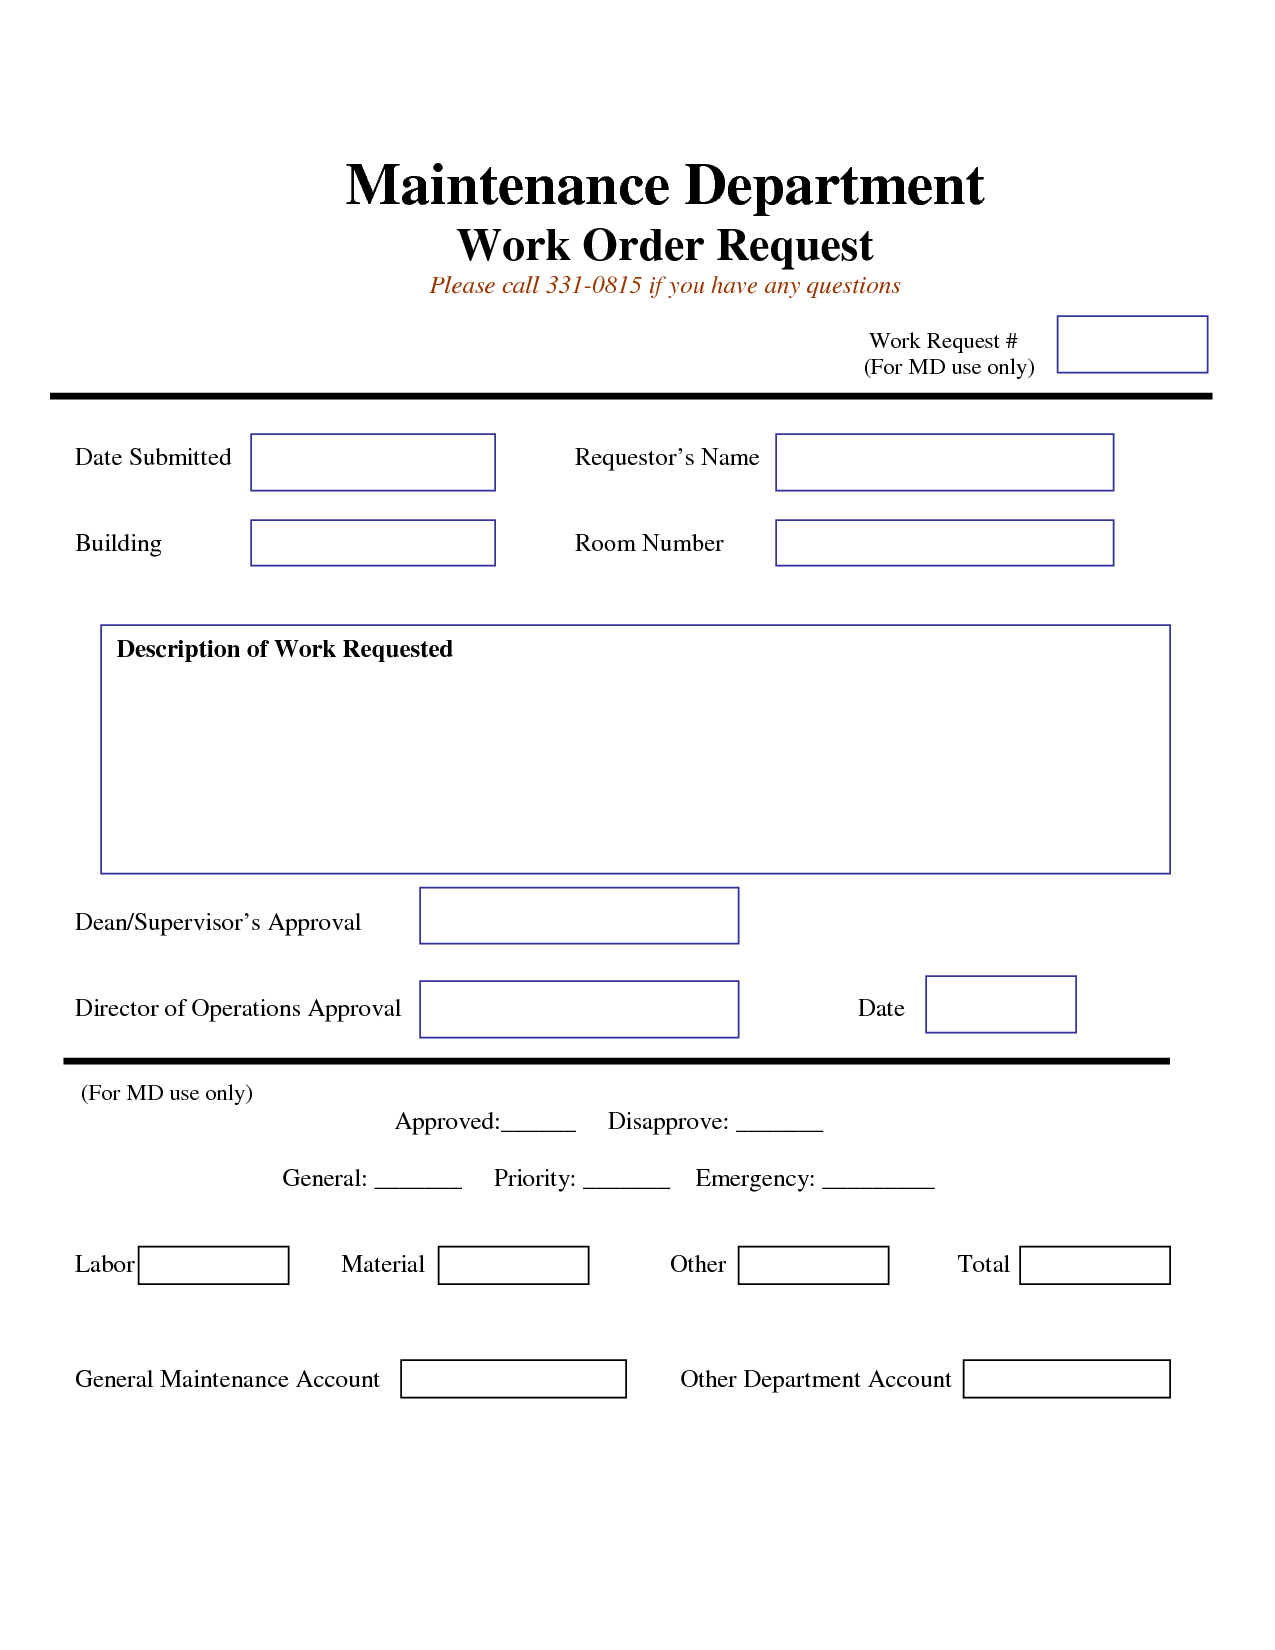 Work Request Form Maintenance Work Order Request Form